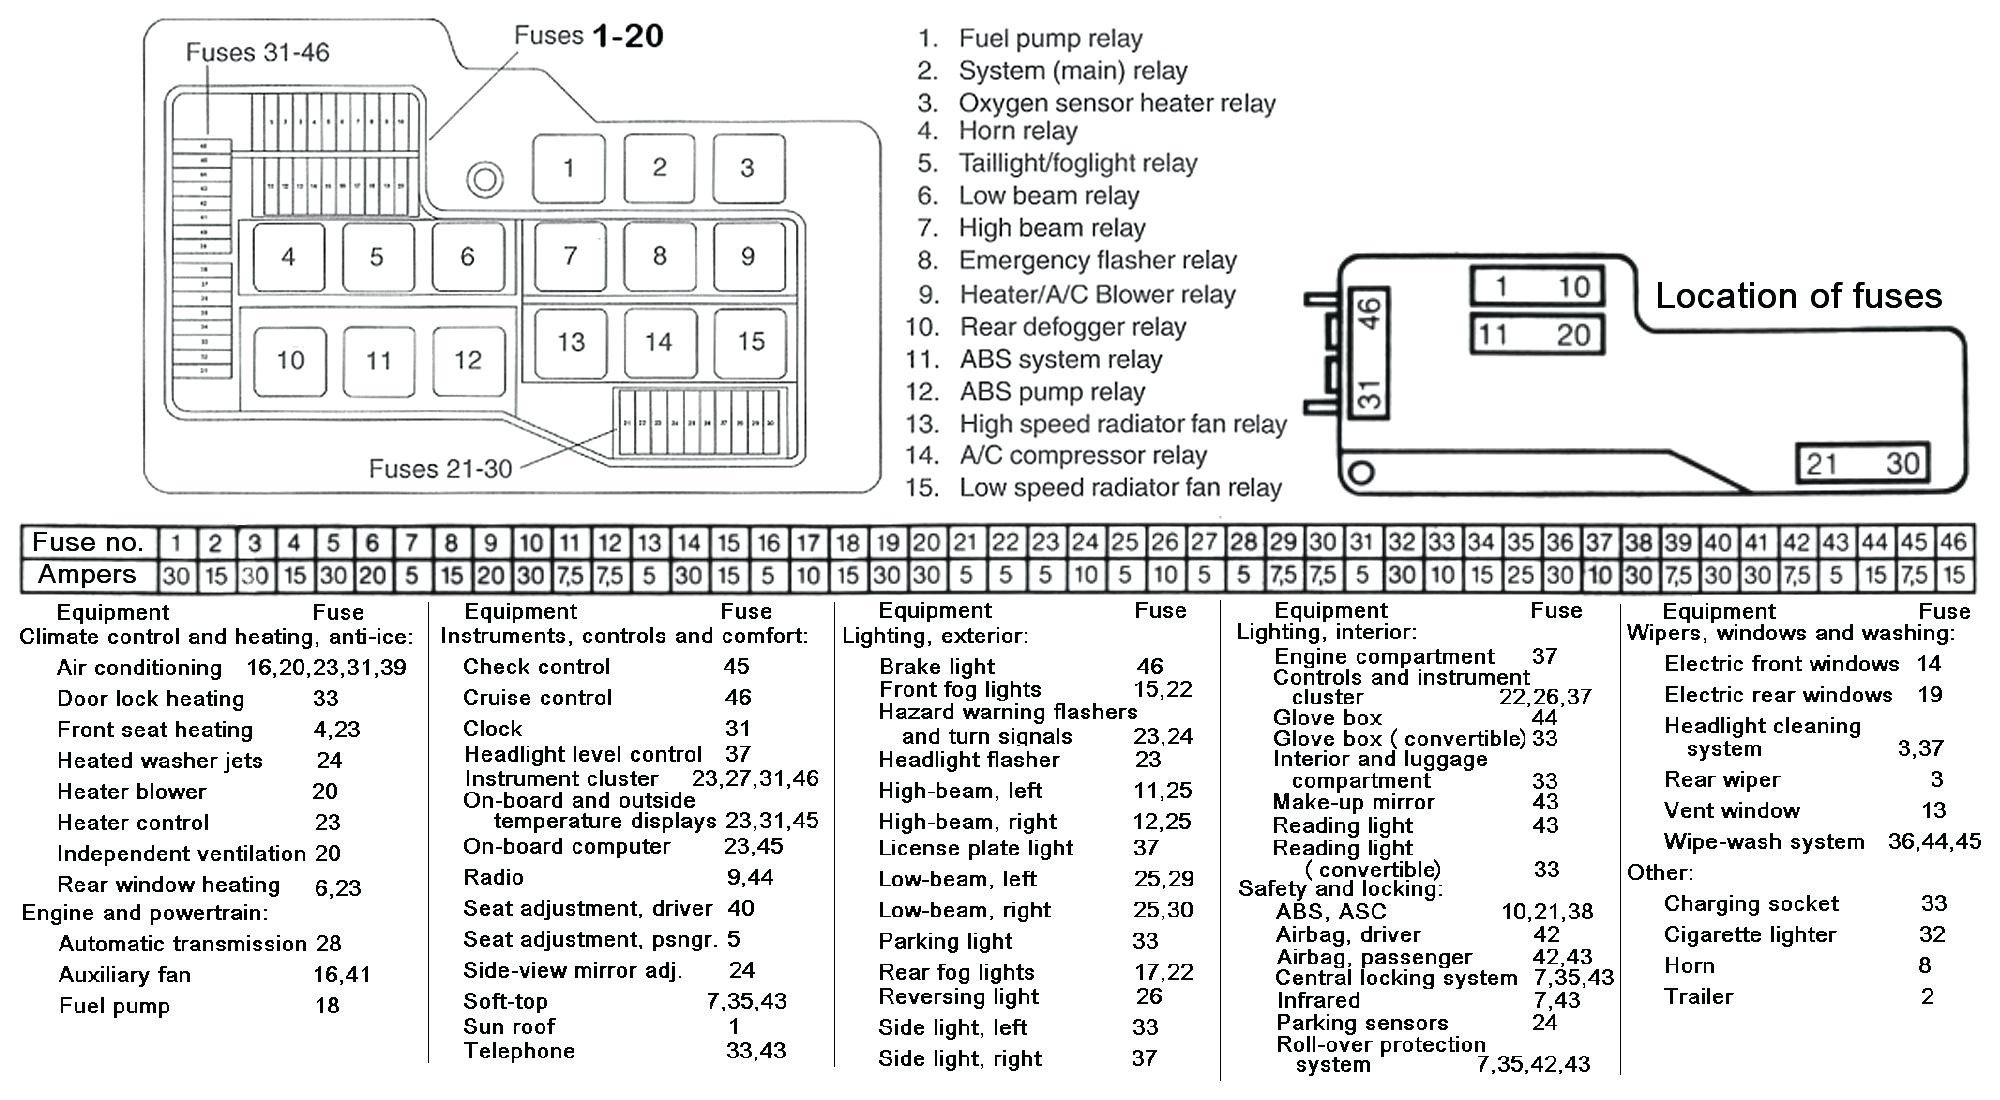 smart forfour fuse box diagram all wiring diagram 2005 Mustang Fuse Box Location